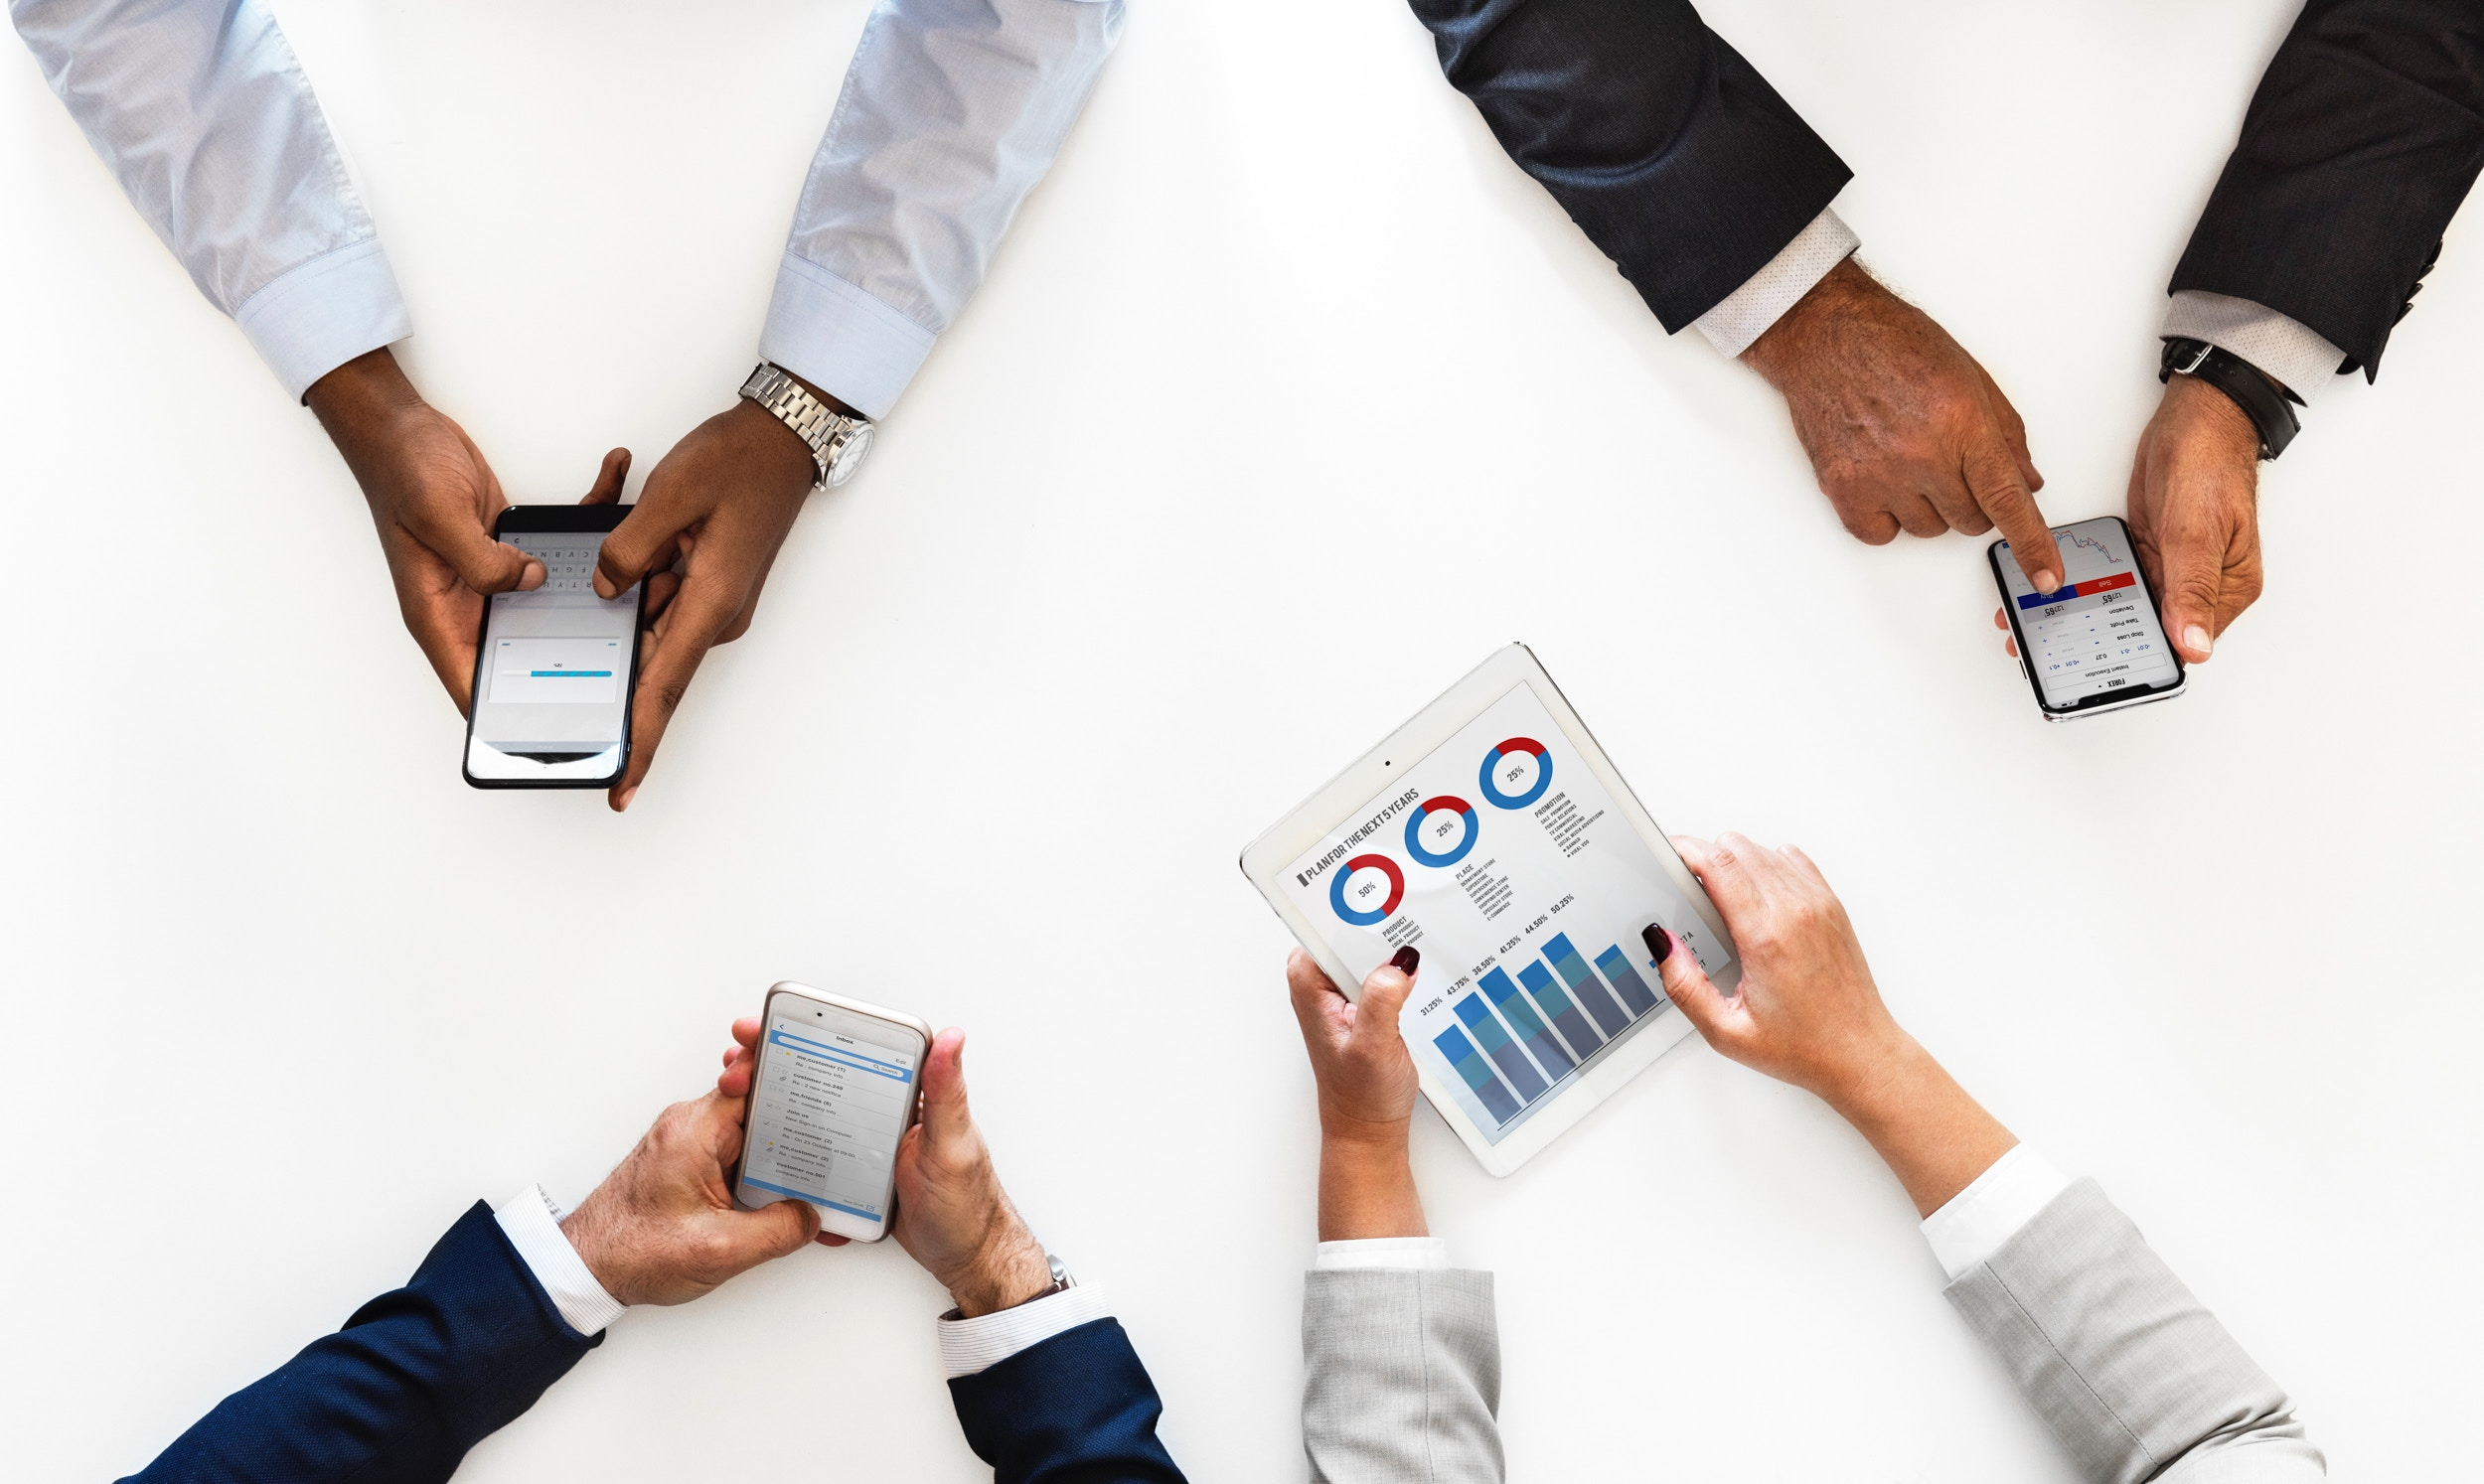 Before purchasing contract management software, thoroughly assess your company's pre- and post-signing contract processes.